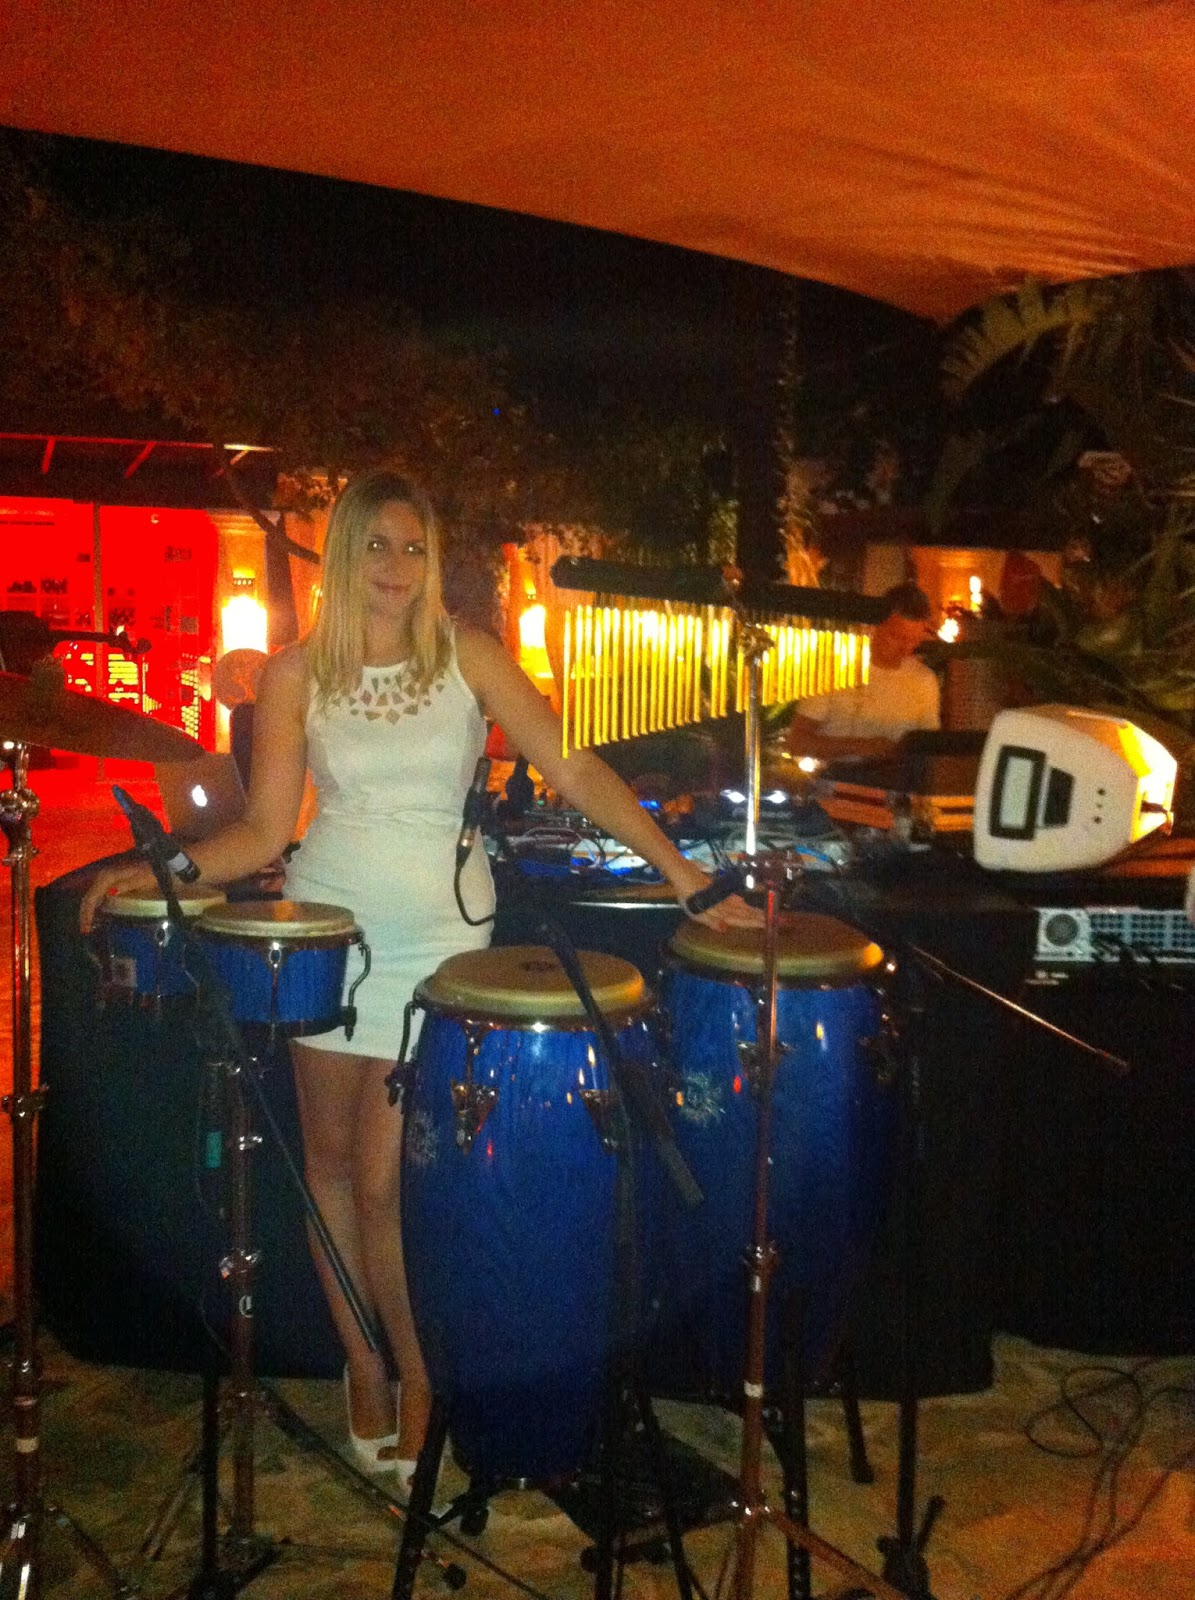 Dj percussionist she plays drums for Ibiza house orchestra